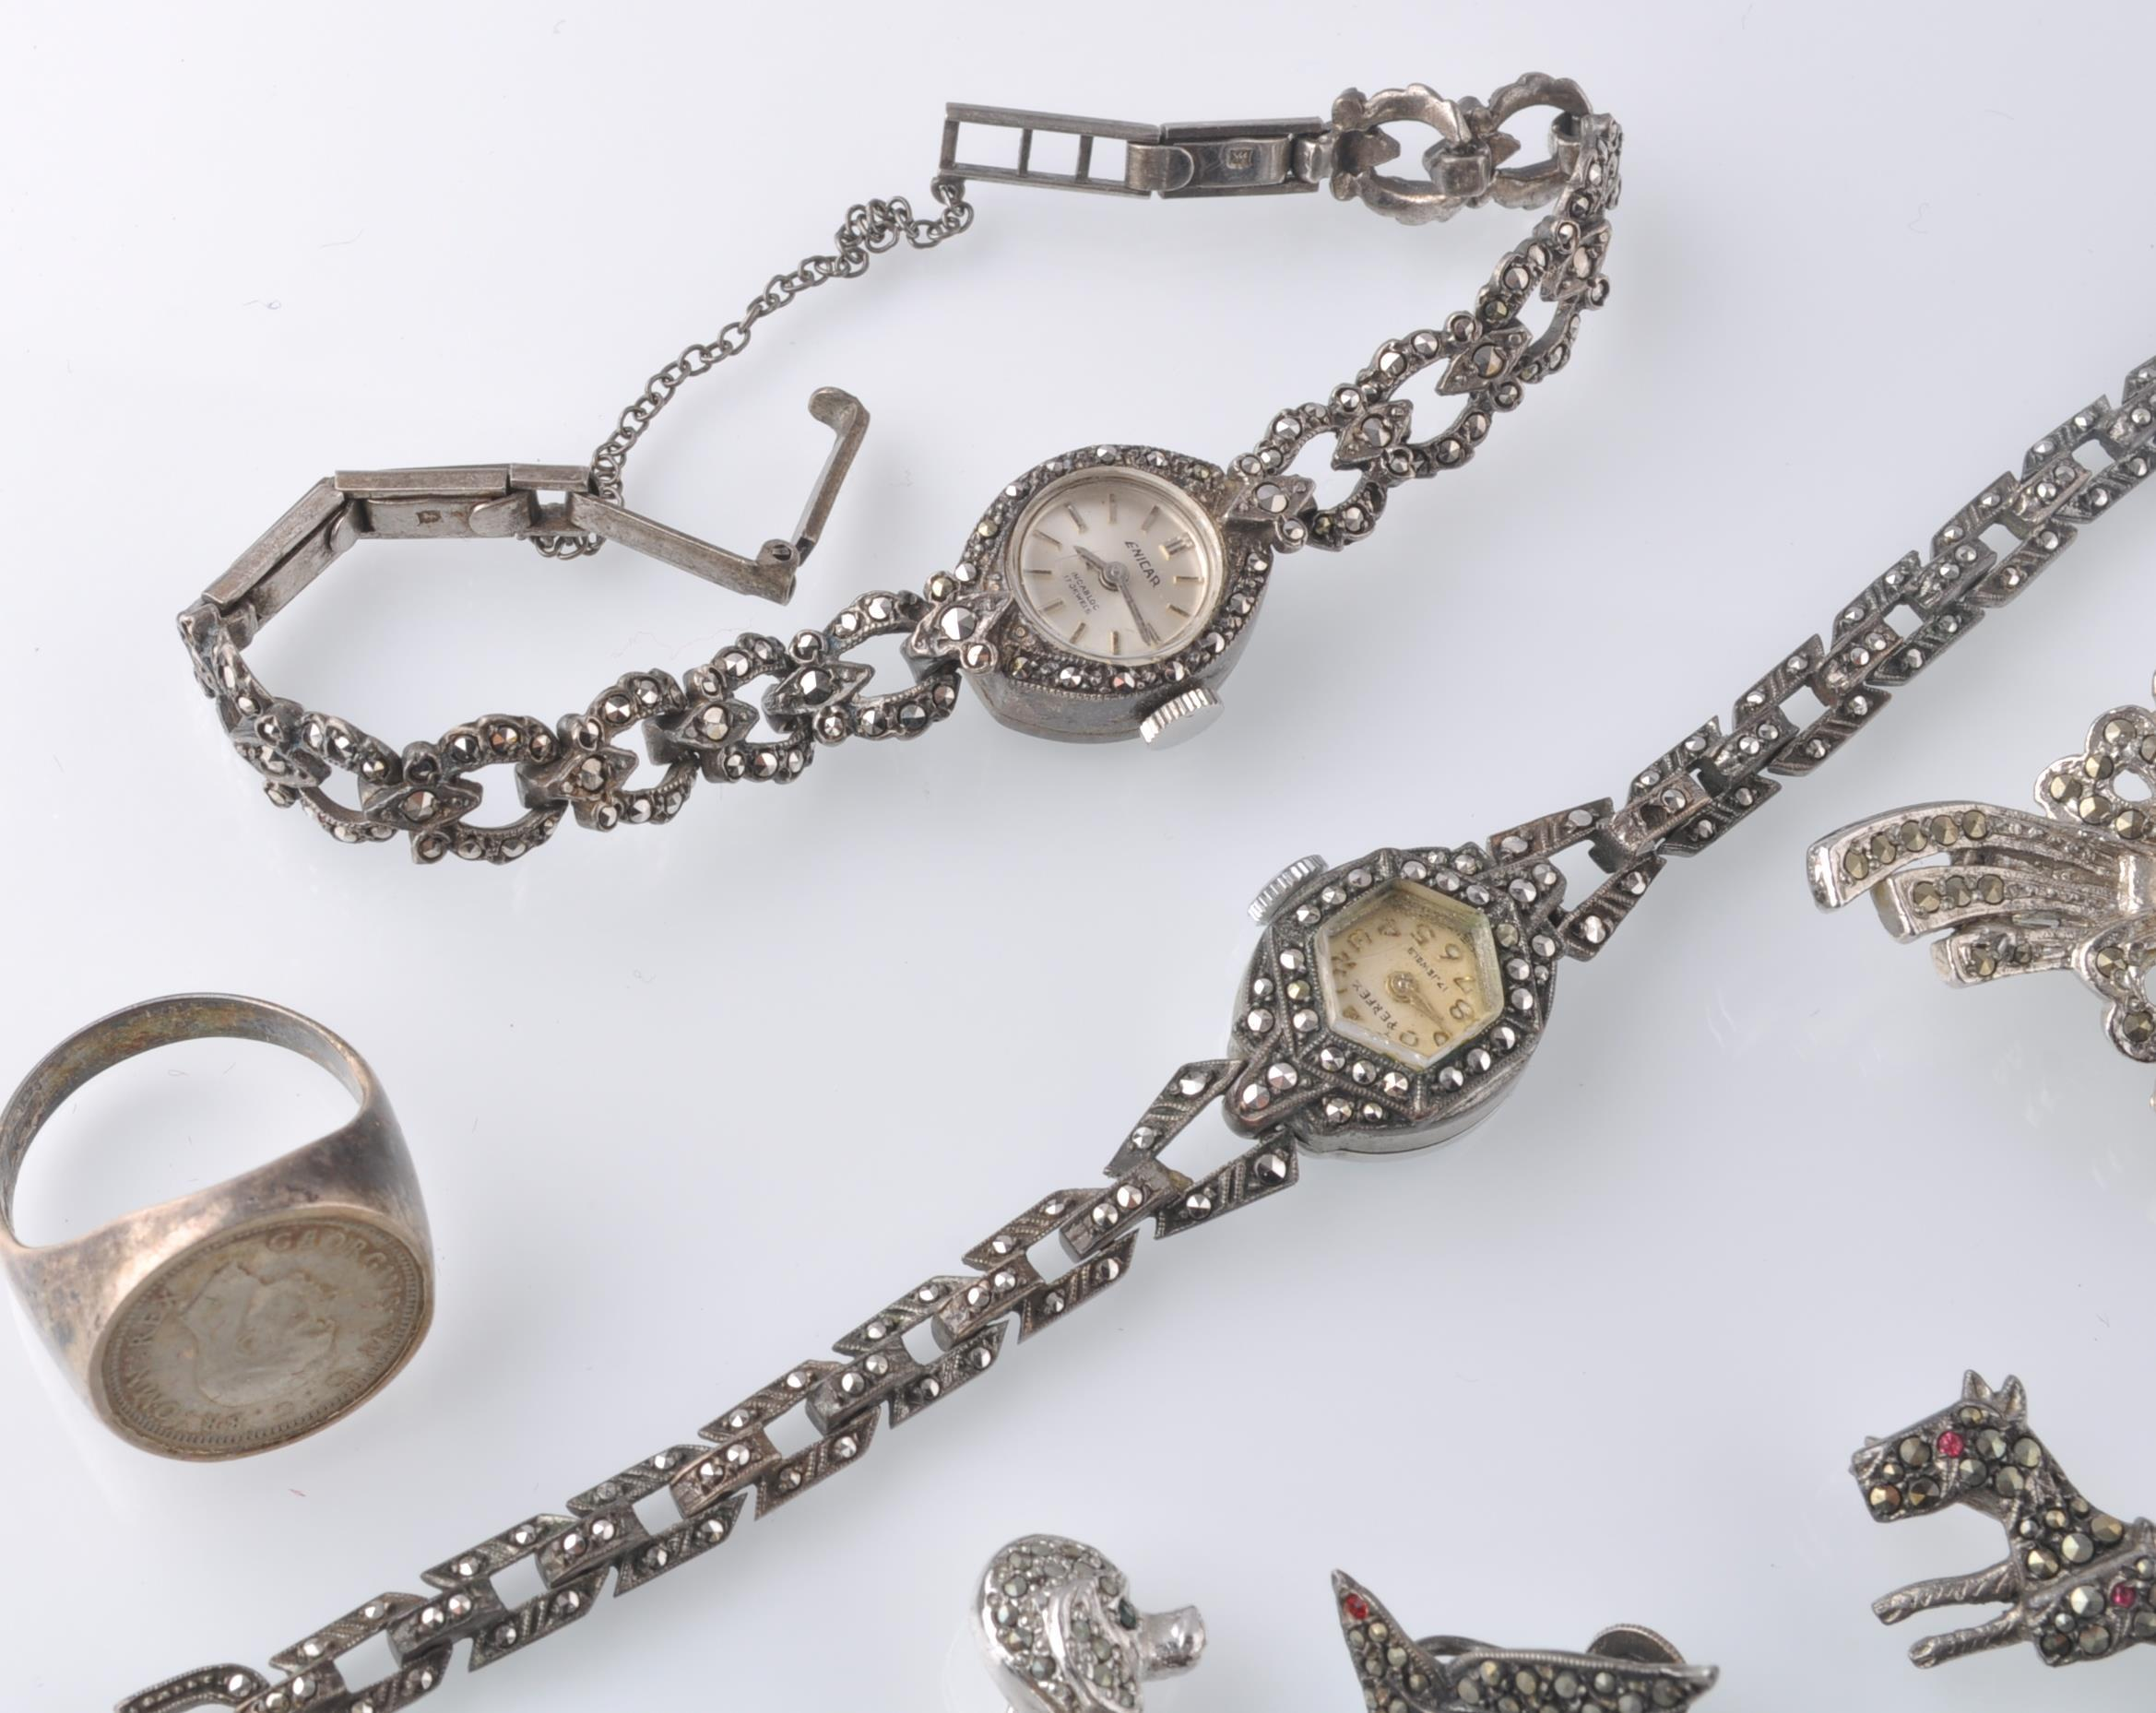 LARGE SELECTION OF SILVER AND WHITE METAL JEWELLER - Image 9 of 13